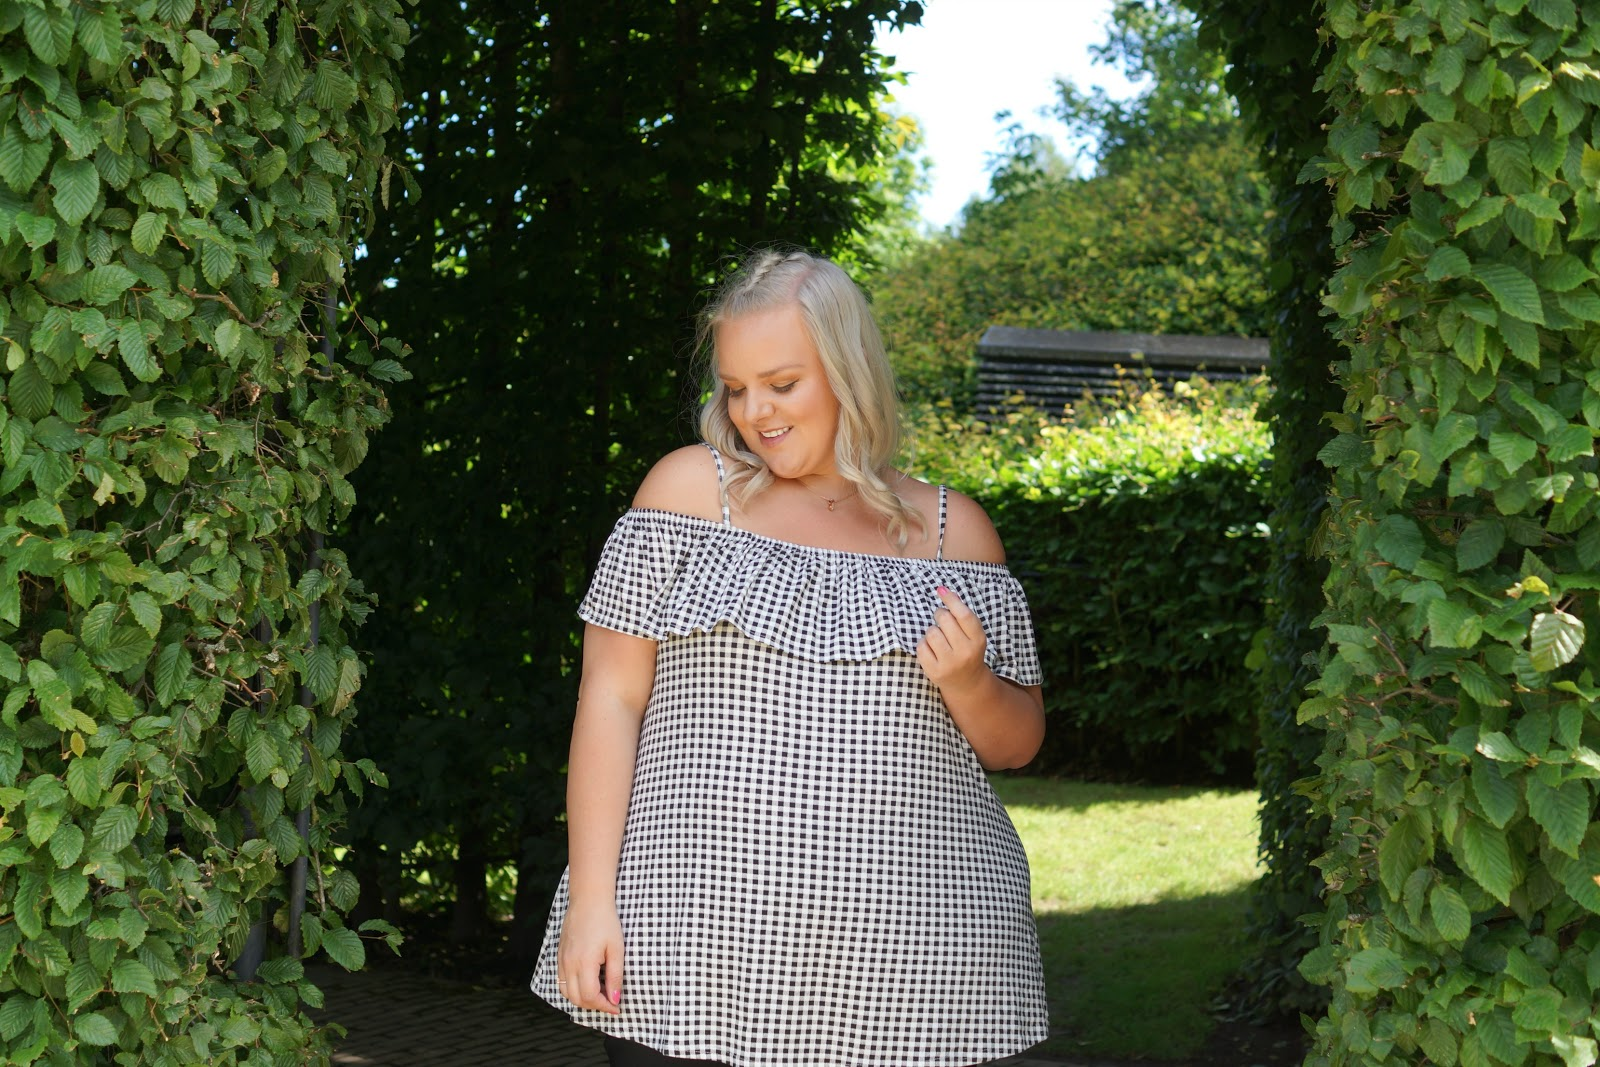 Yours Clothing UK Plus Size Blogger WhatLauraLoves at The Alnwick Garden